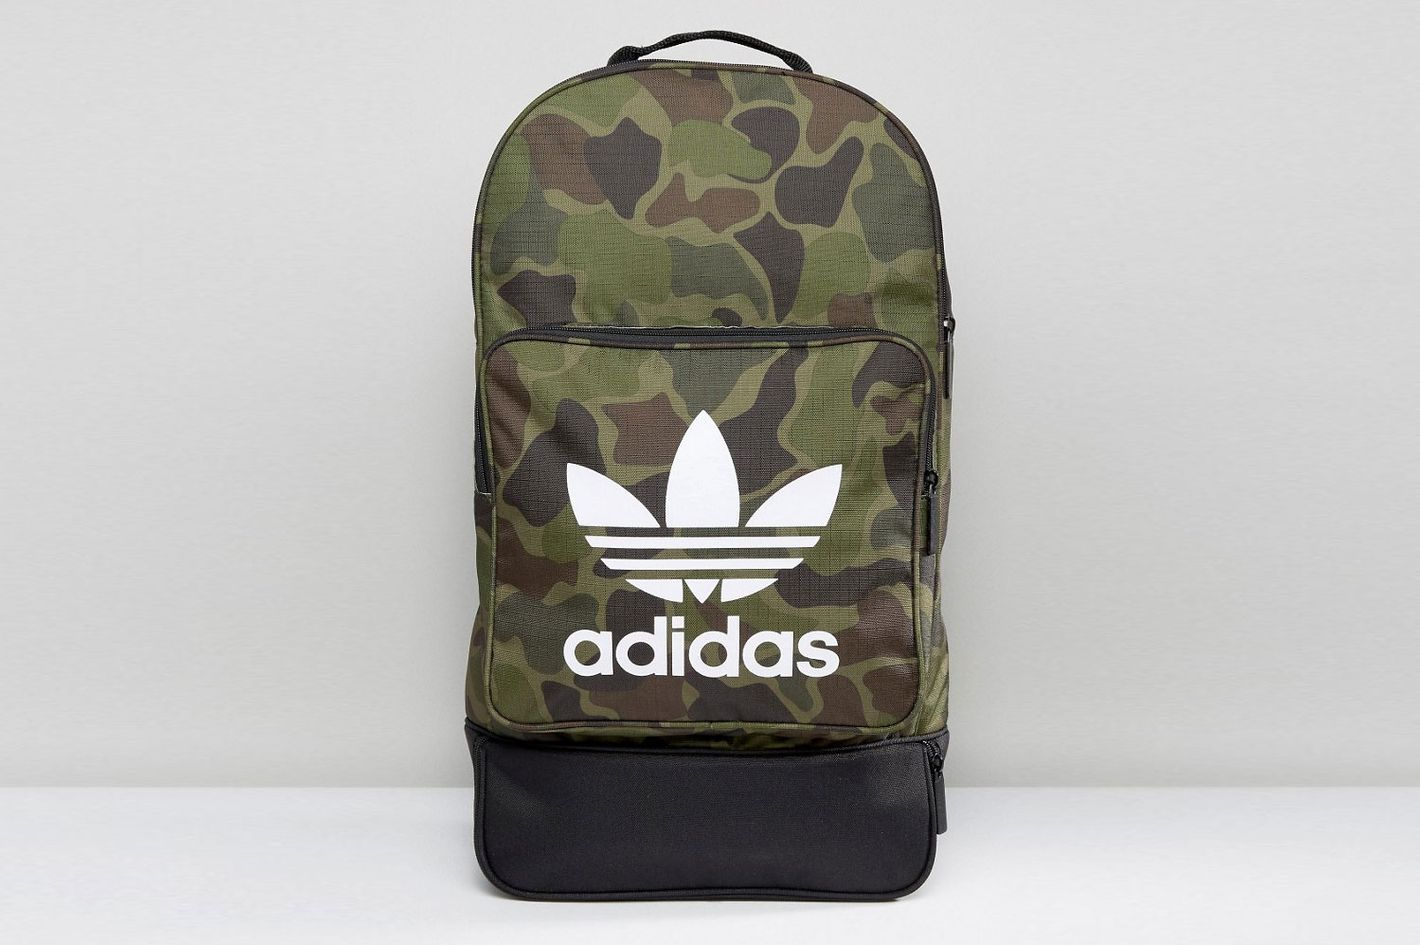 Adidas Original Cross Backpack